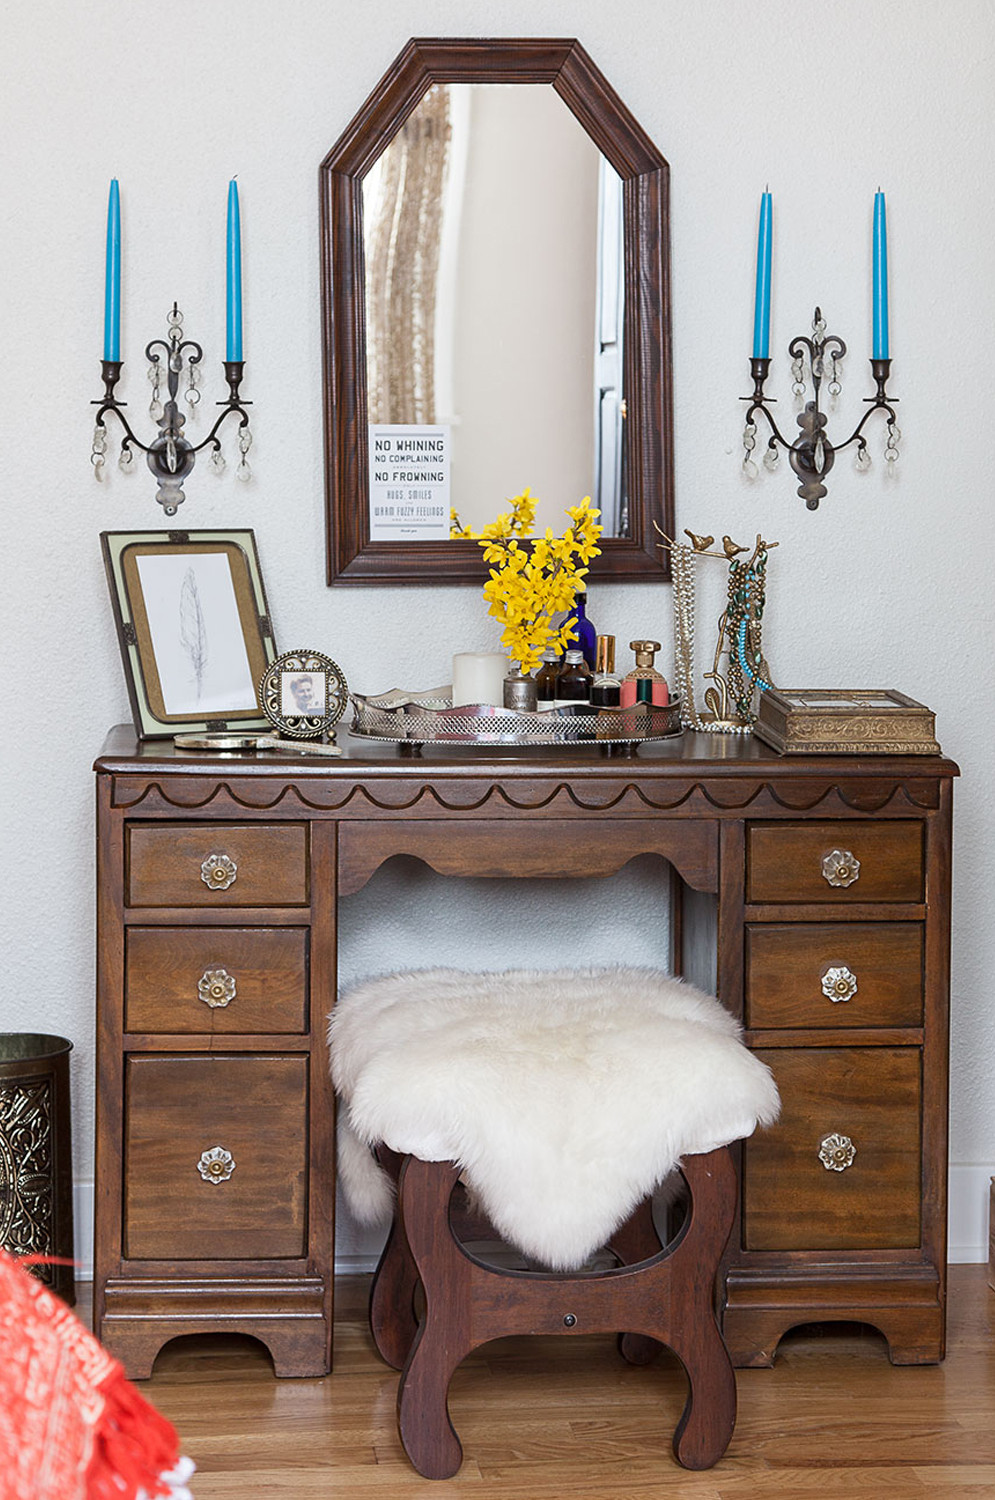 Lindsey's grandmother's vanity is one of numerous heirlooms that made the journey from Louisiana to Tennessee.